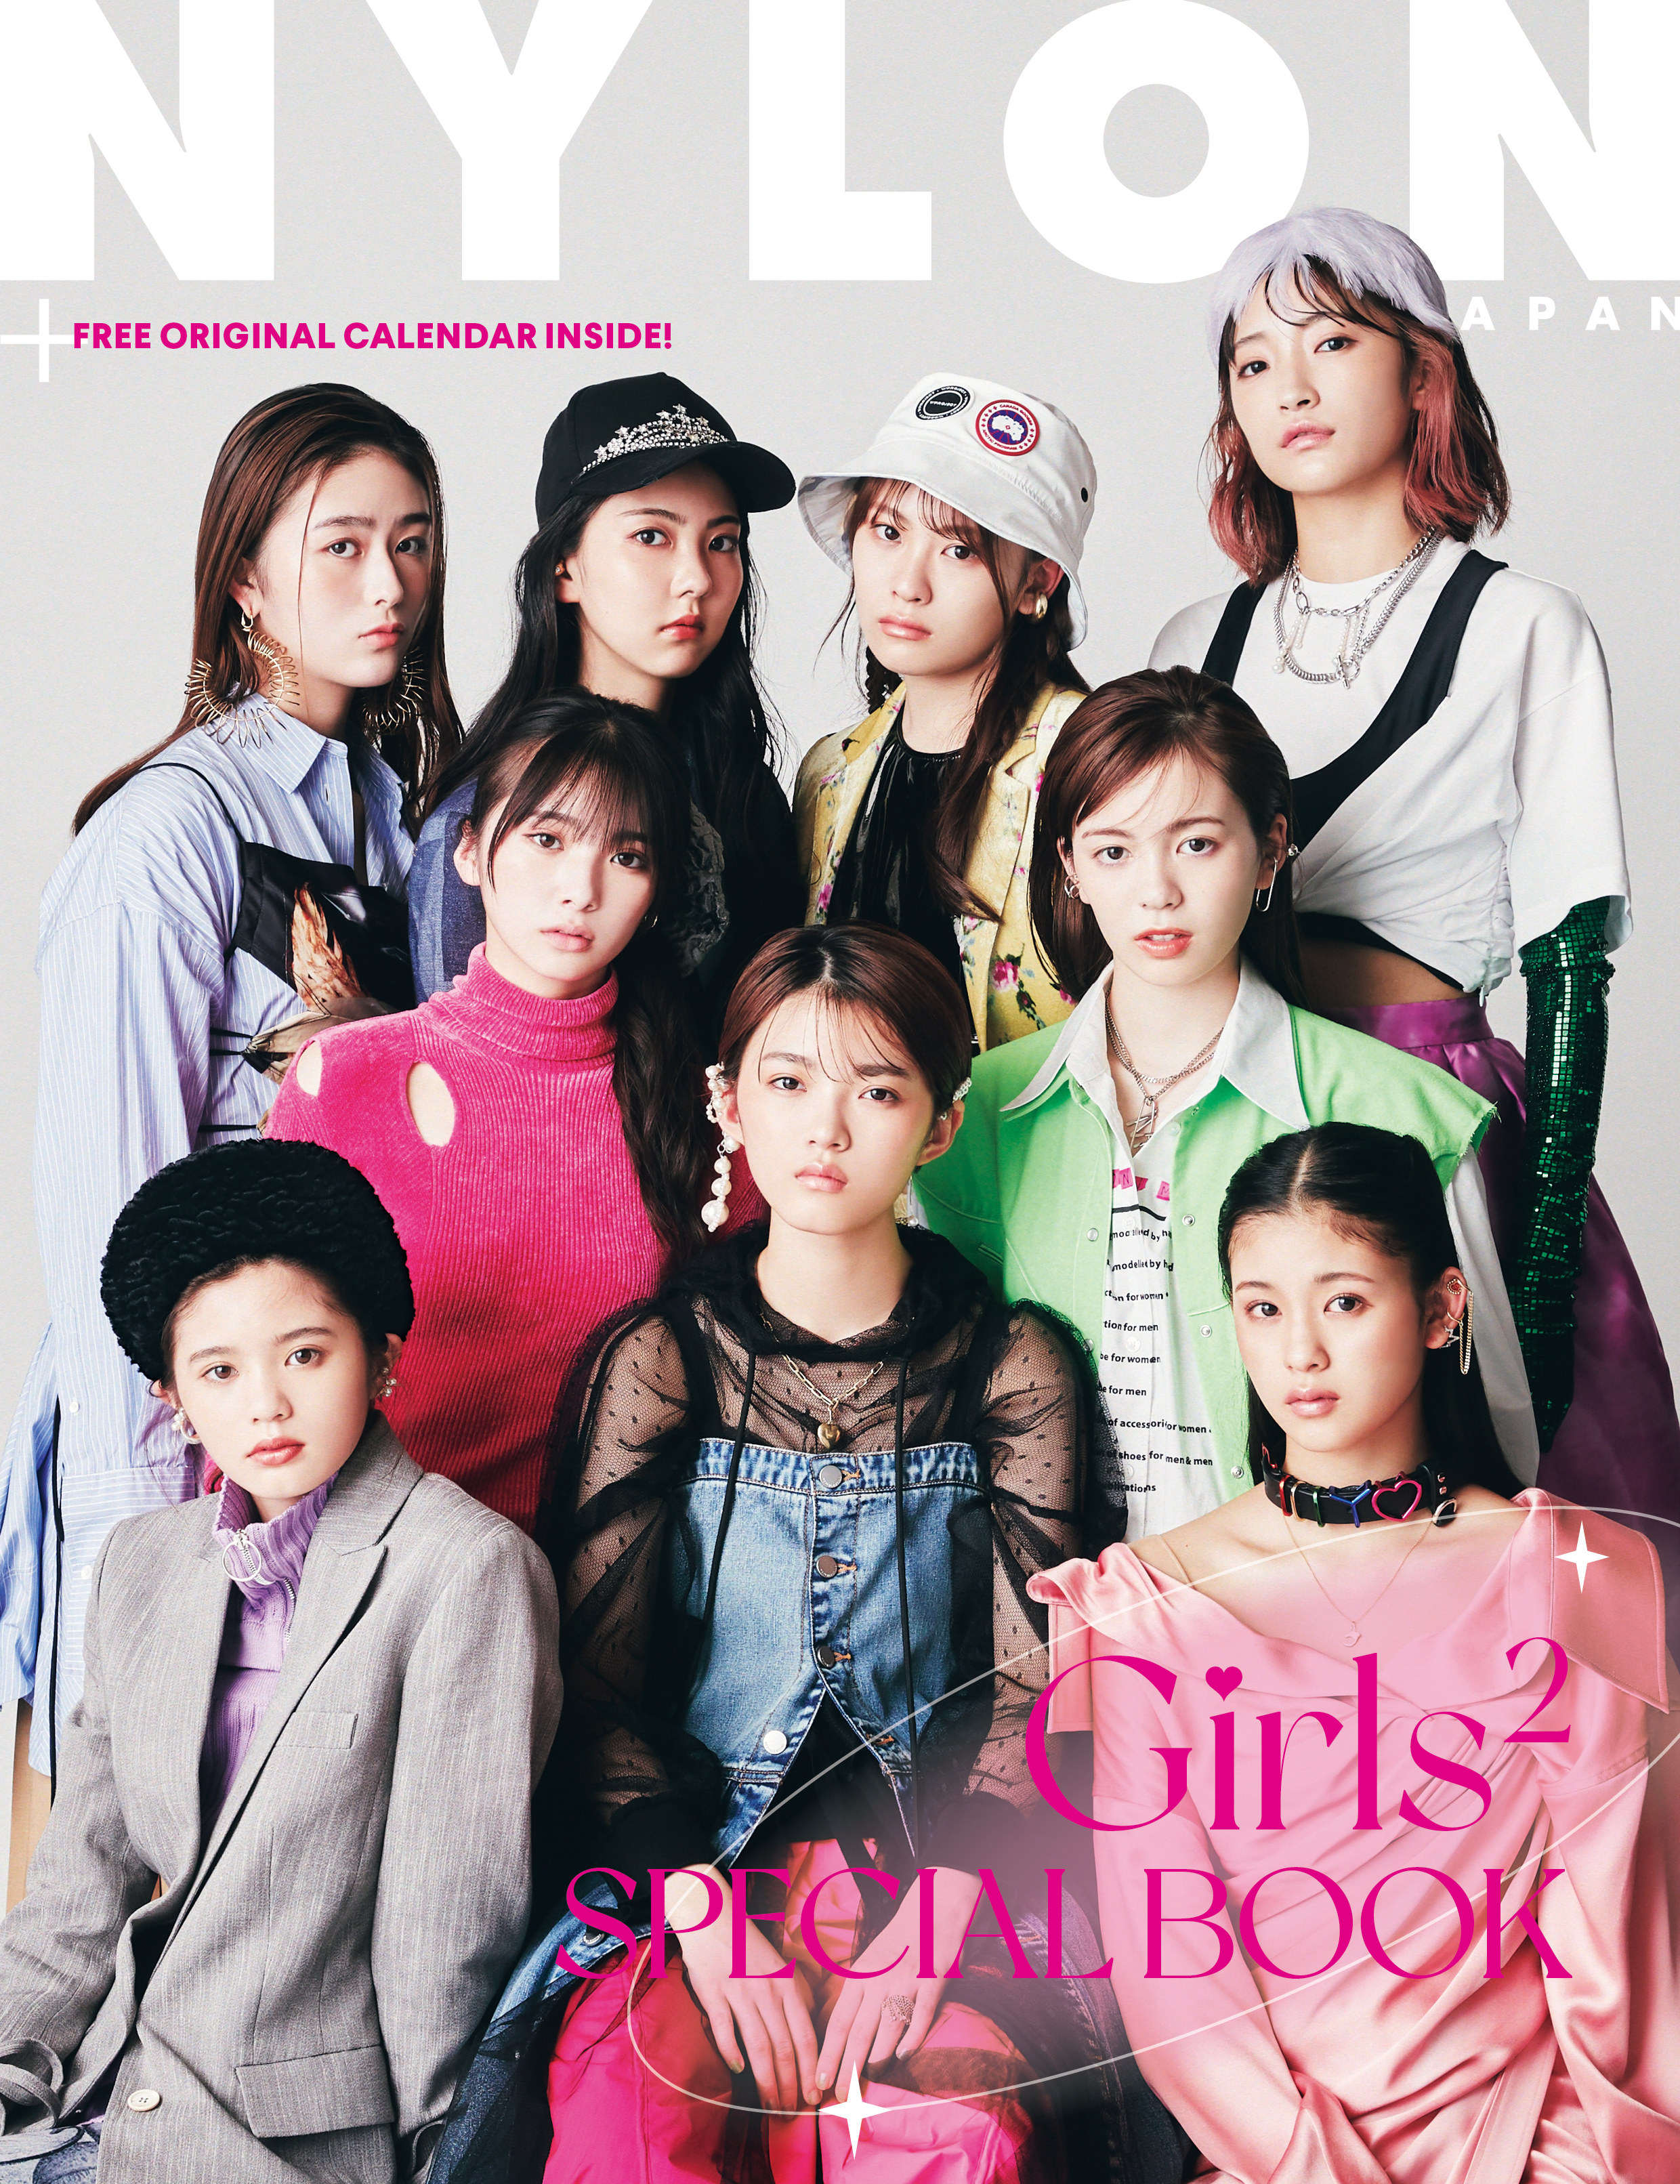 Girls² SPECIAL BOOK - produced by NYLON JAPAN